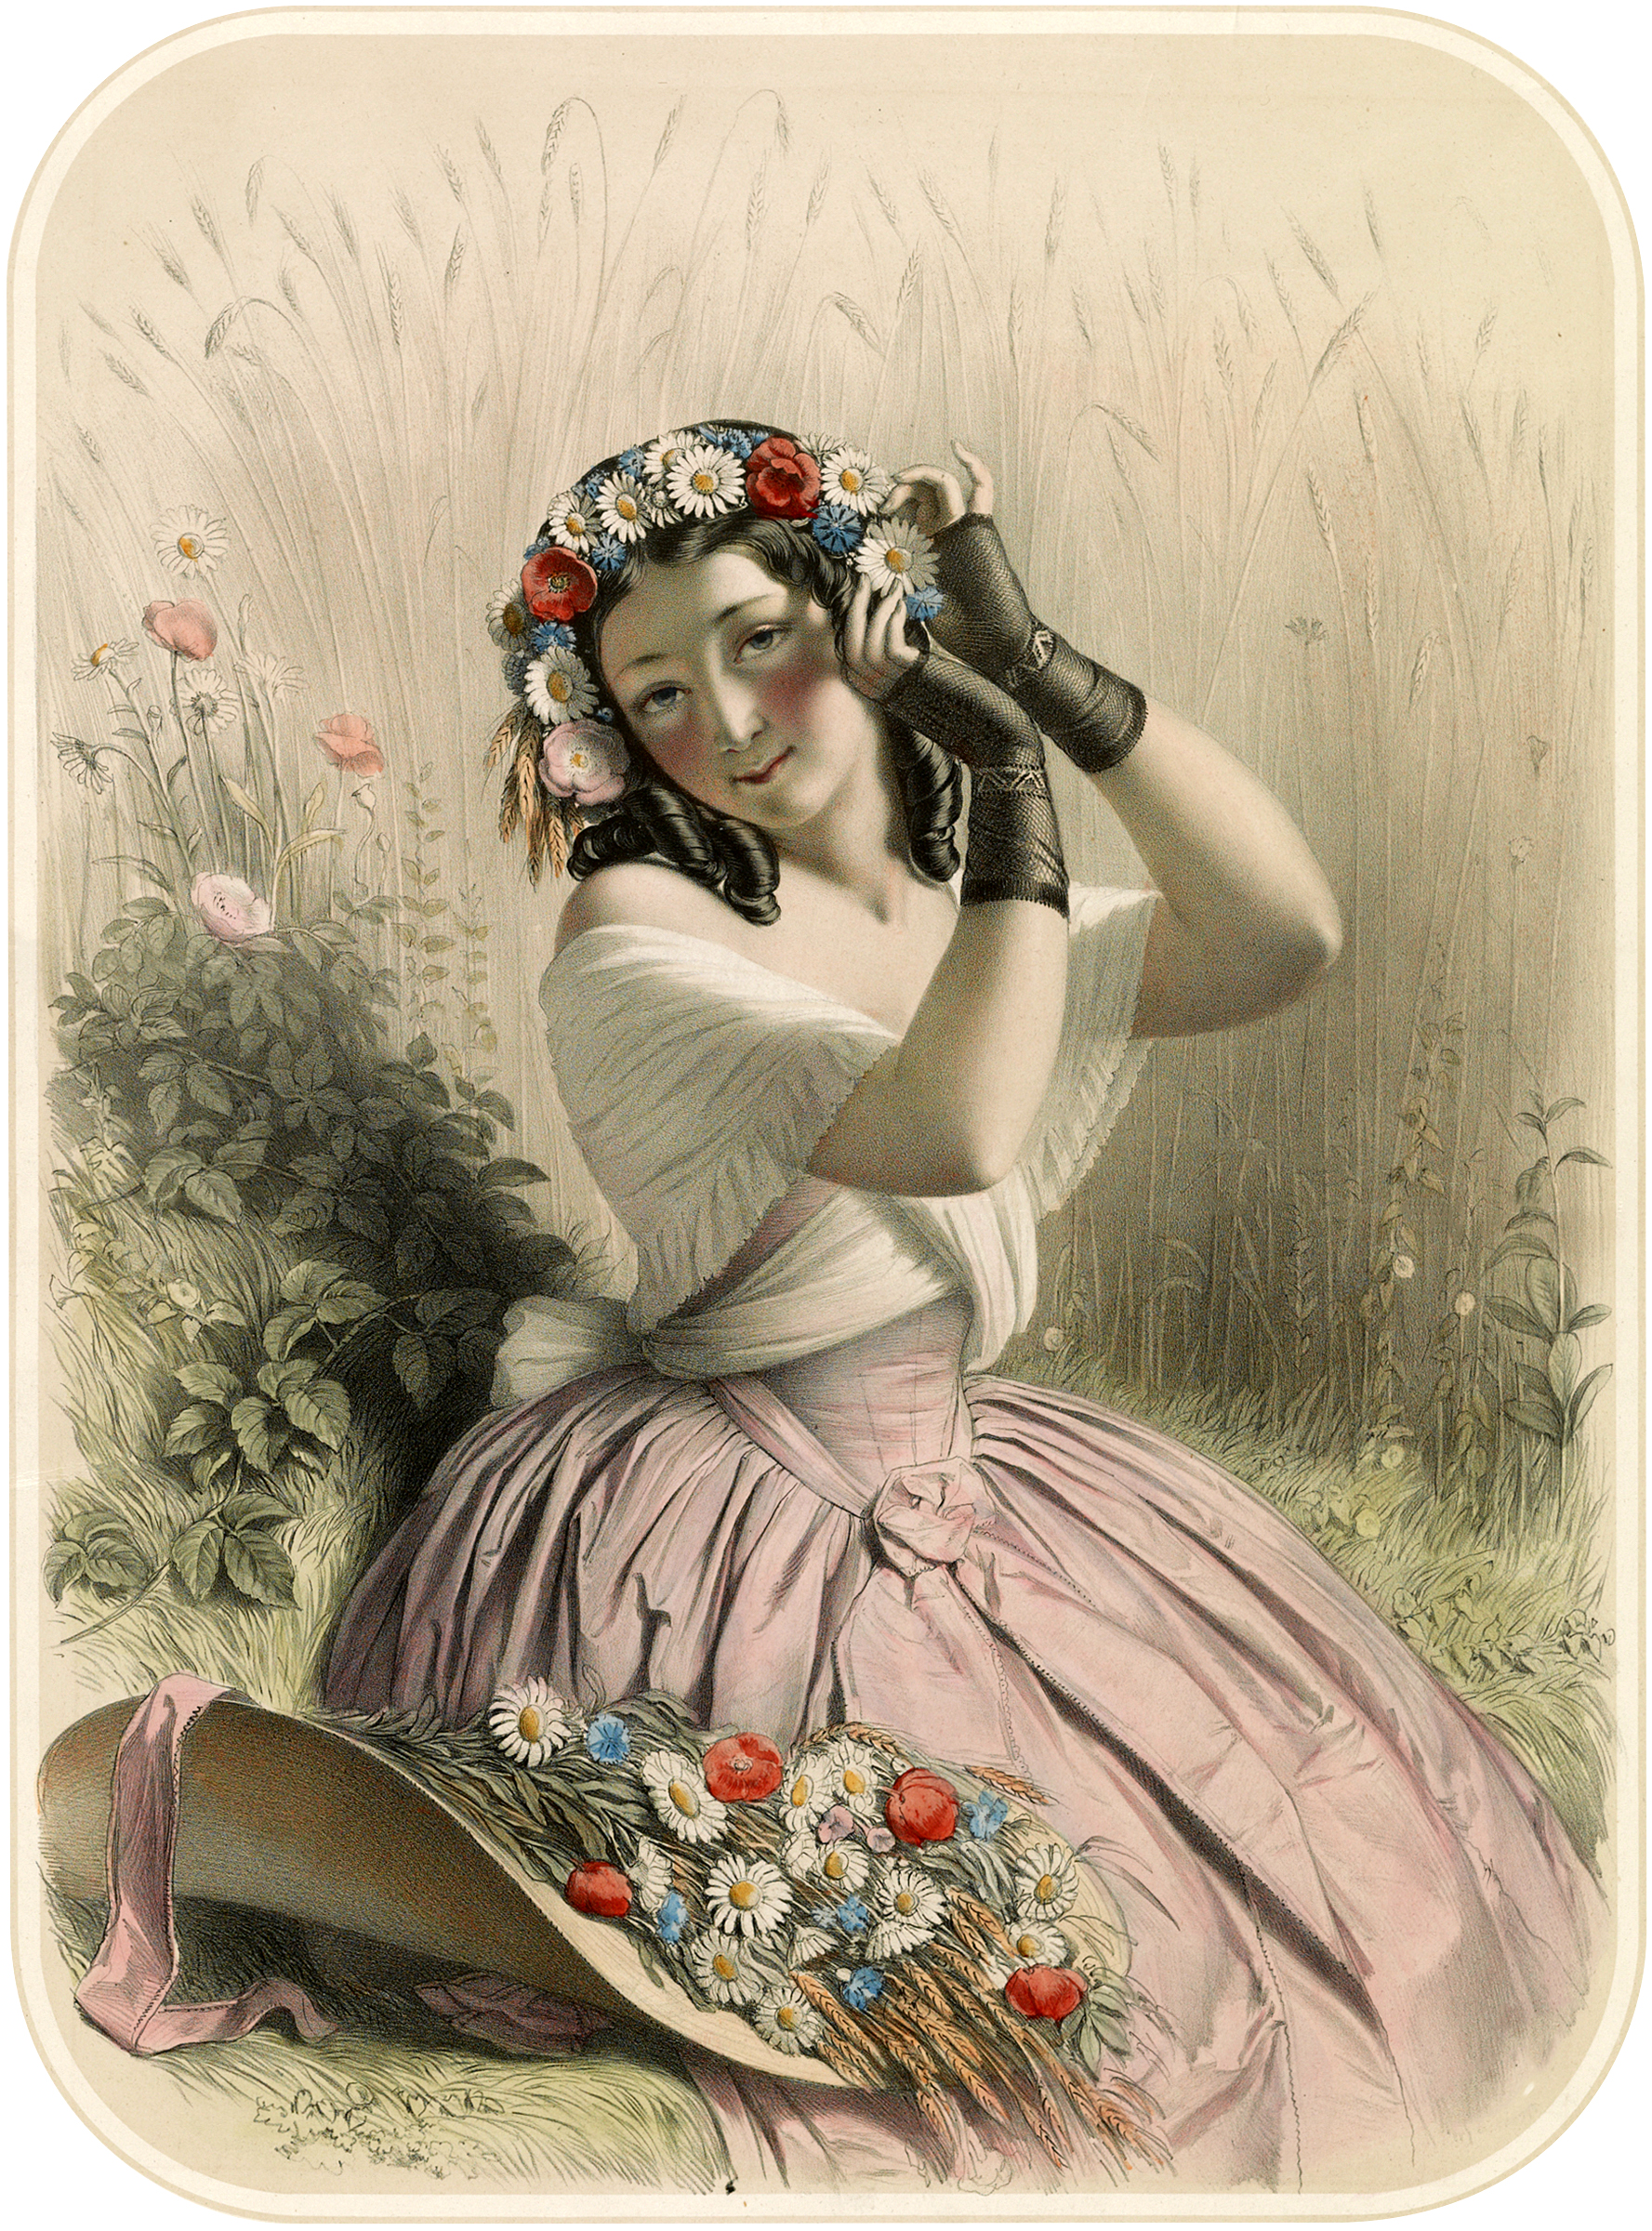 Image: CHARMING VINTAGE GIRL WEARING A FLOWER CROWN courtesy of The Graphics Fairy